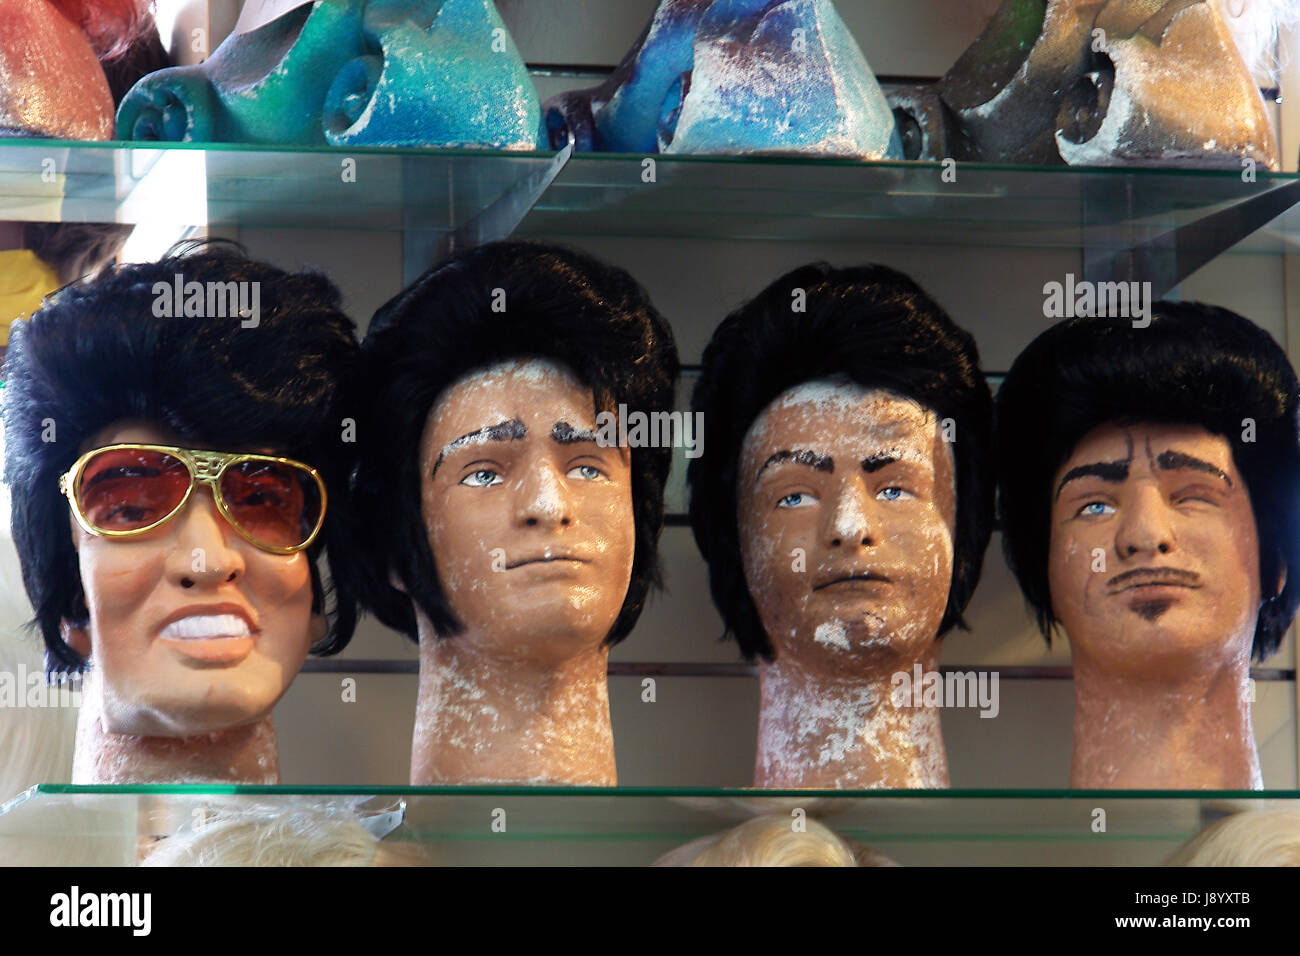 Wig Shop In Los Angeles Usa Stock Photo 143213963 Alamy